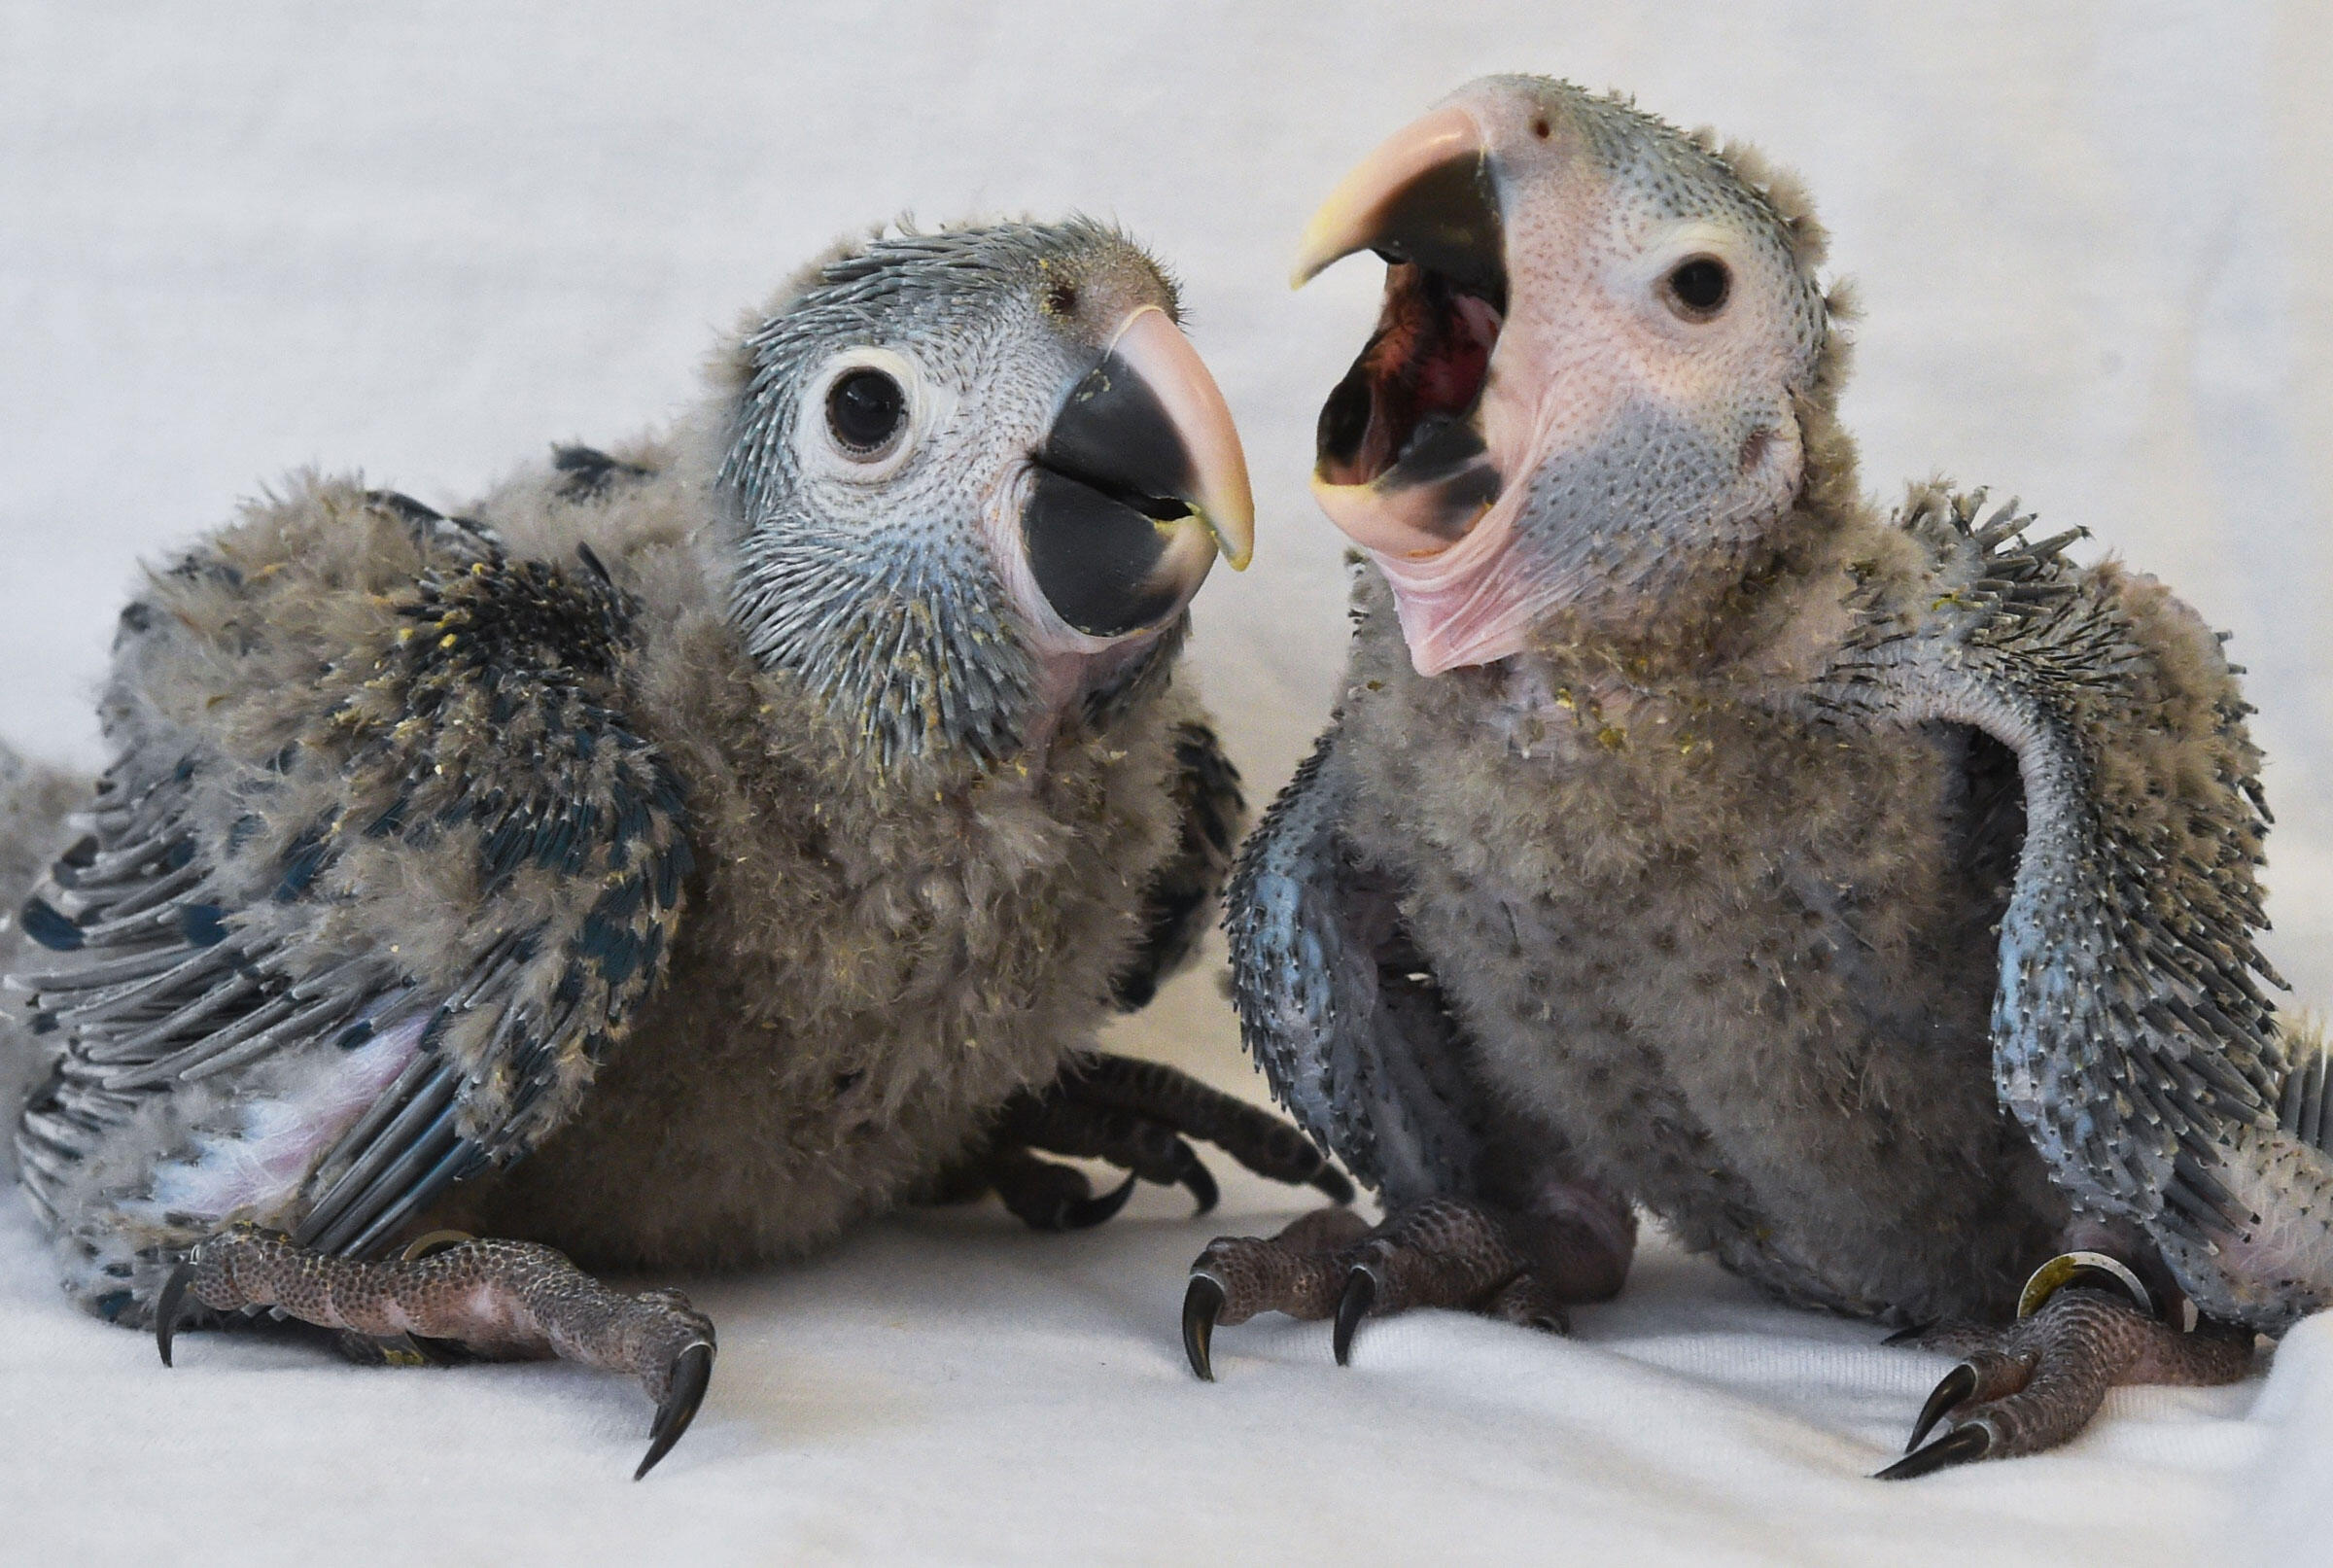 """Two Spix's Macaw chicks at ACTP in April, 2014. The species is slowly gaining celebrity outside of the bird world: It played the main role in last year's animated film """"Rio 2."""" Patrick Pleul/picture-alliance/dpa/AP Images"""